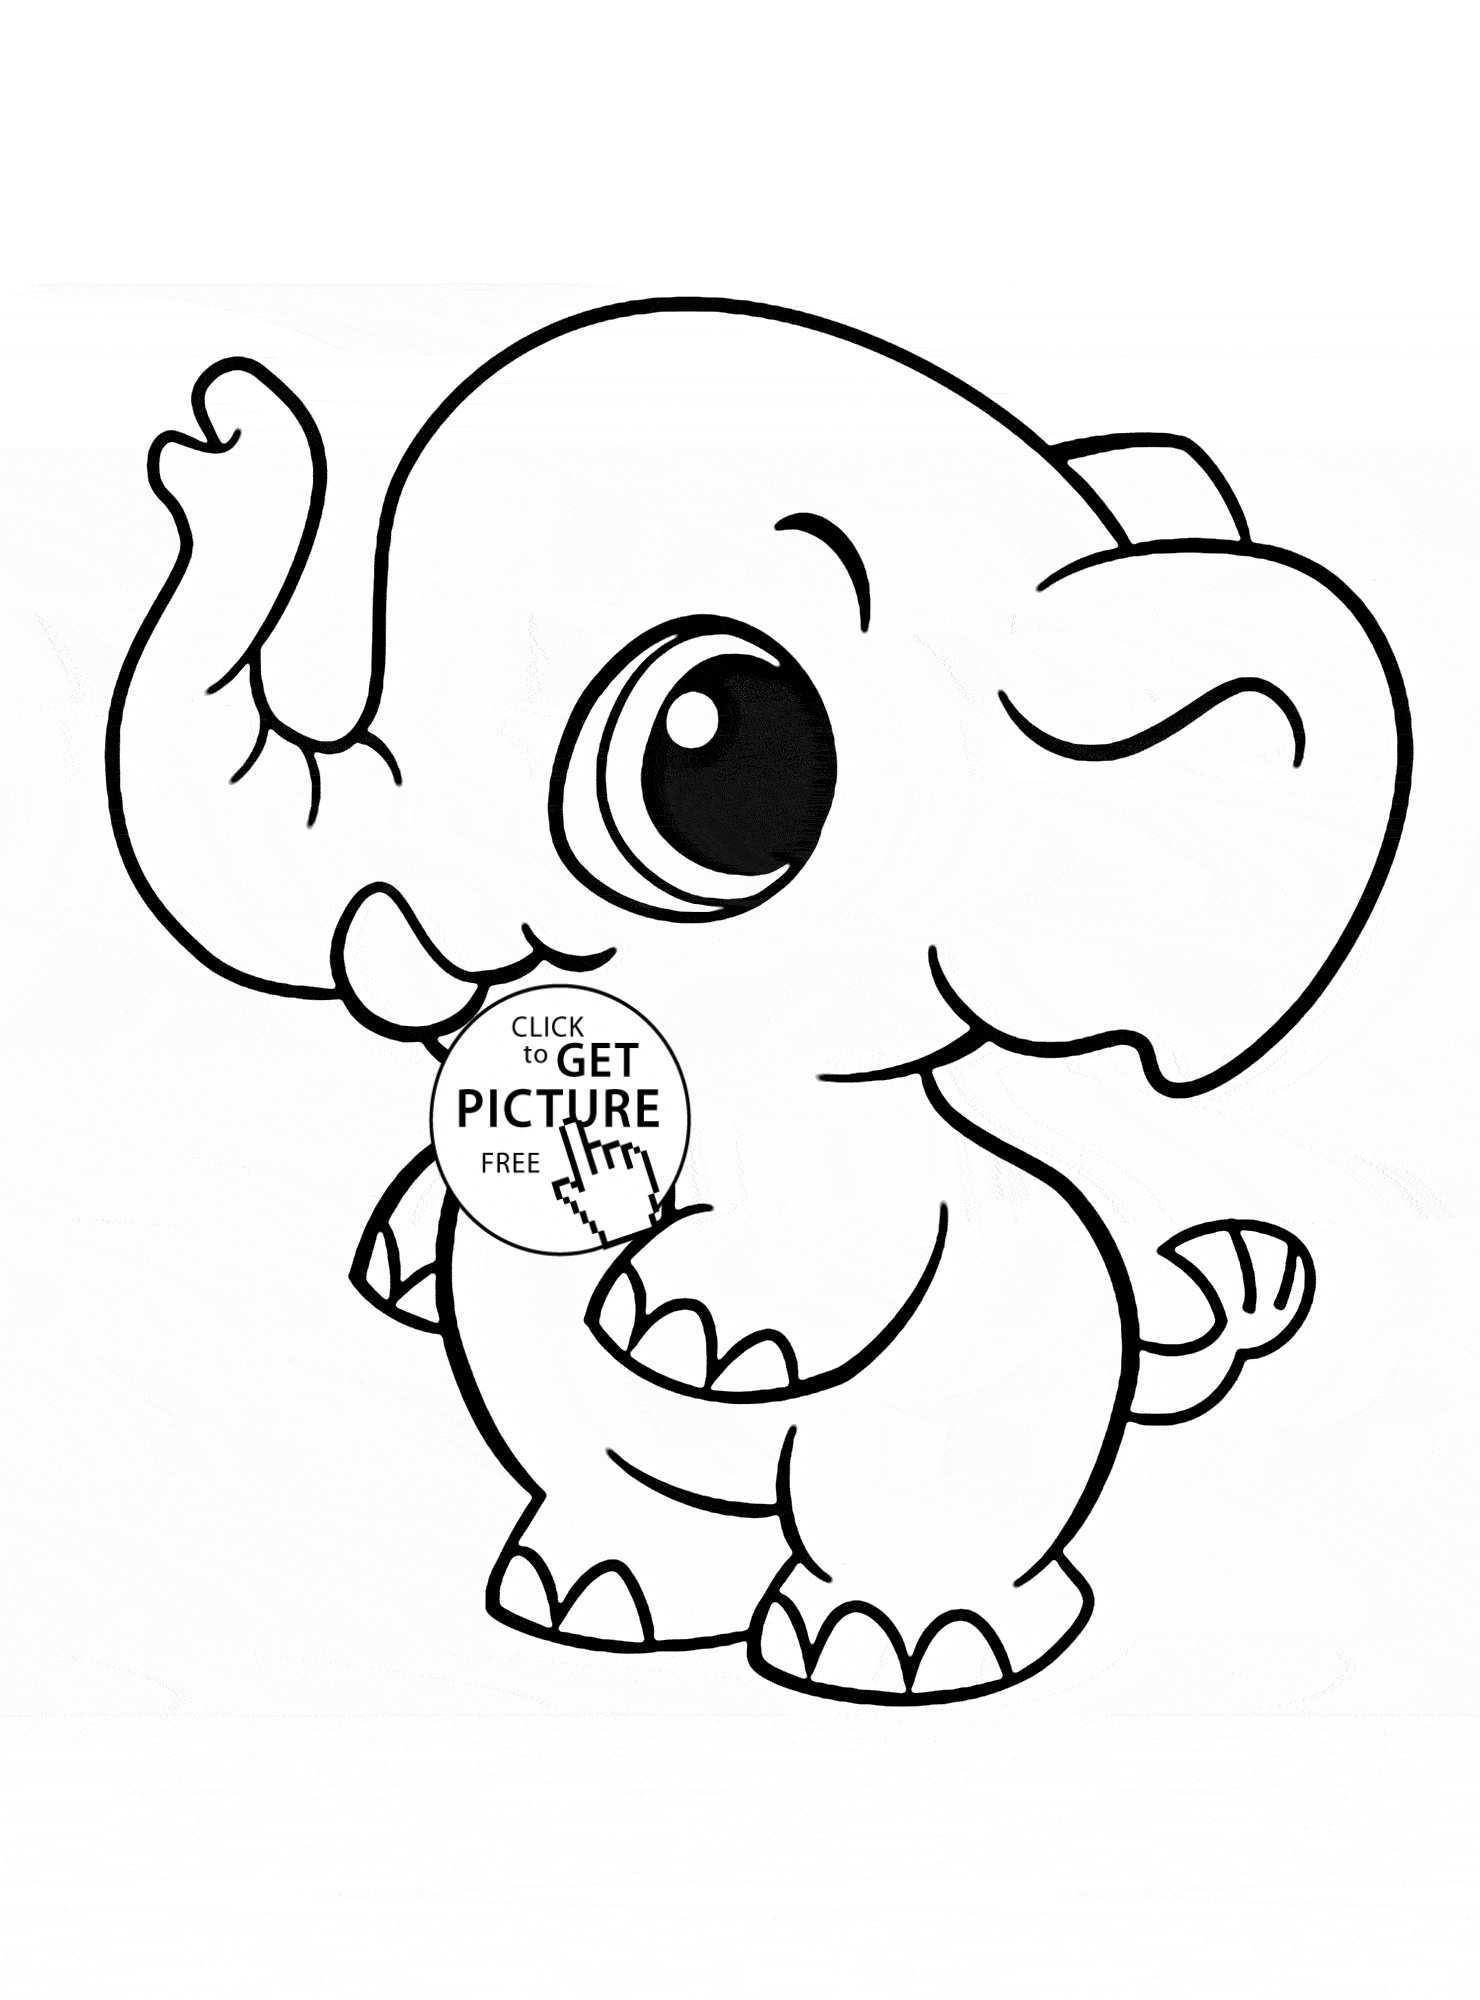 - Best Of Free Printable Beanie Boo Coloring Pages AnyOneForAnyaTeam